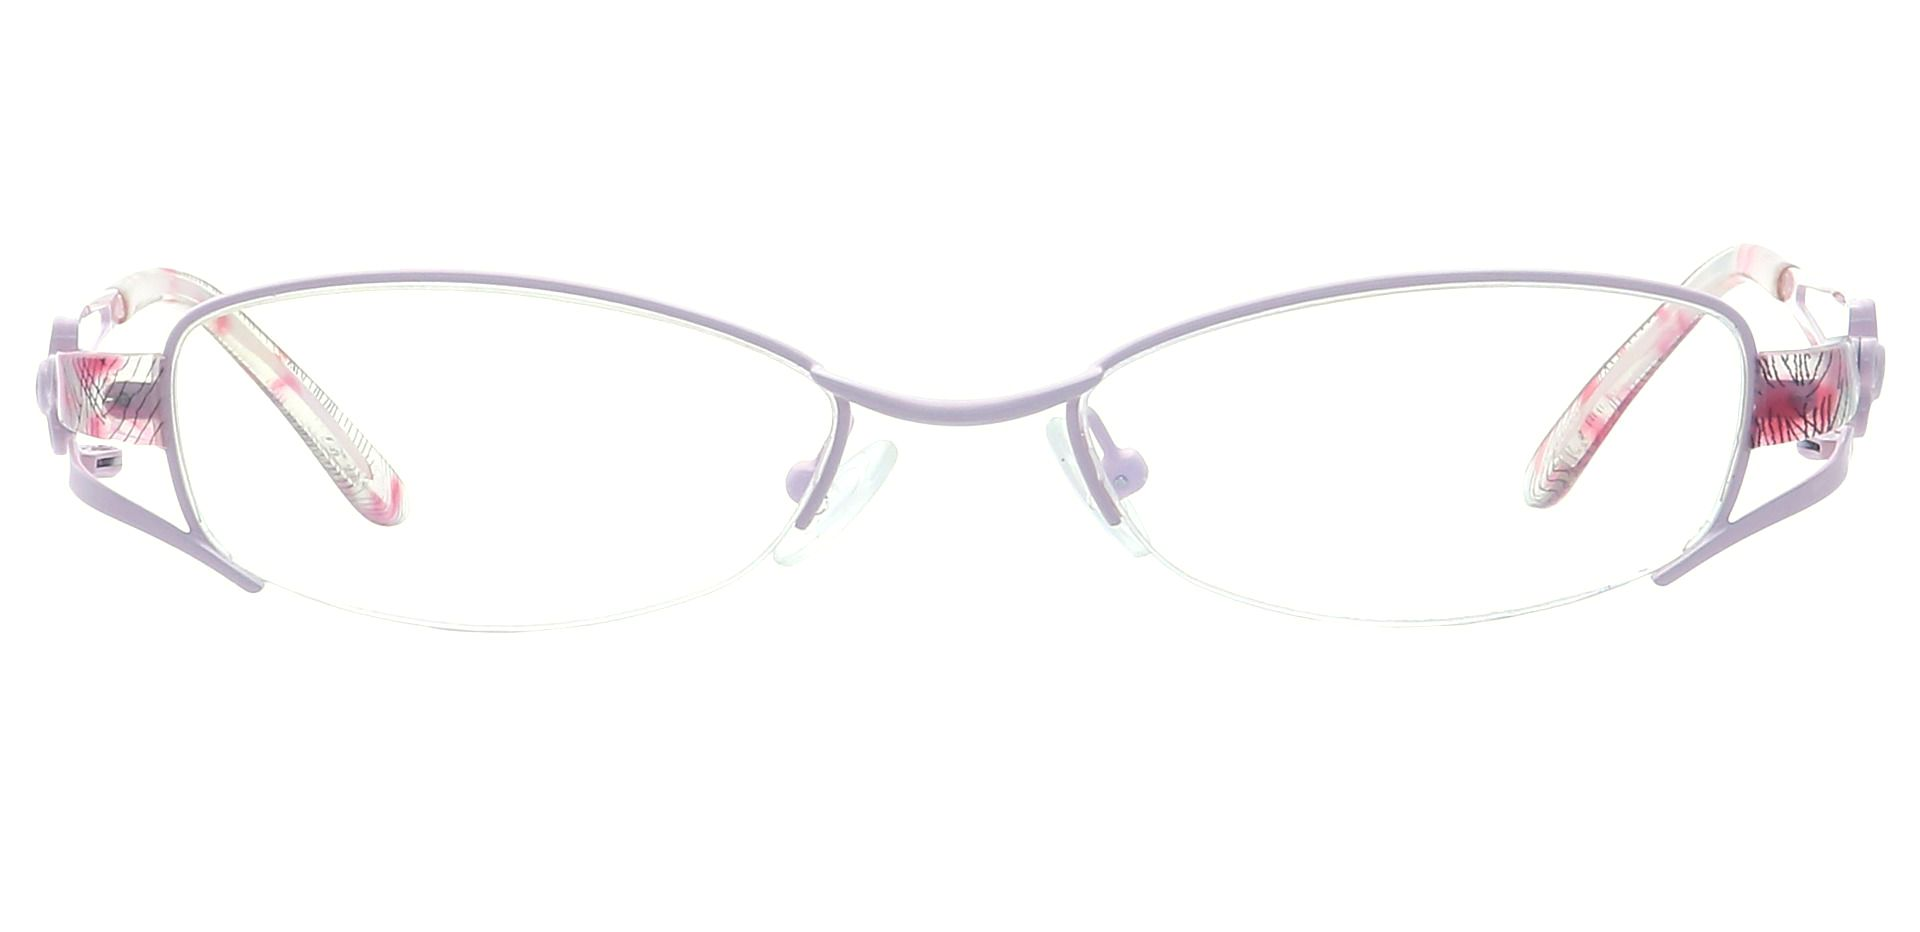 Sandra Oval Reading Glasses - Pink